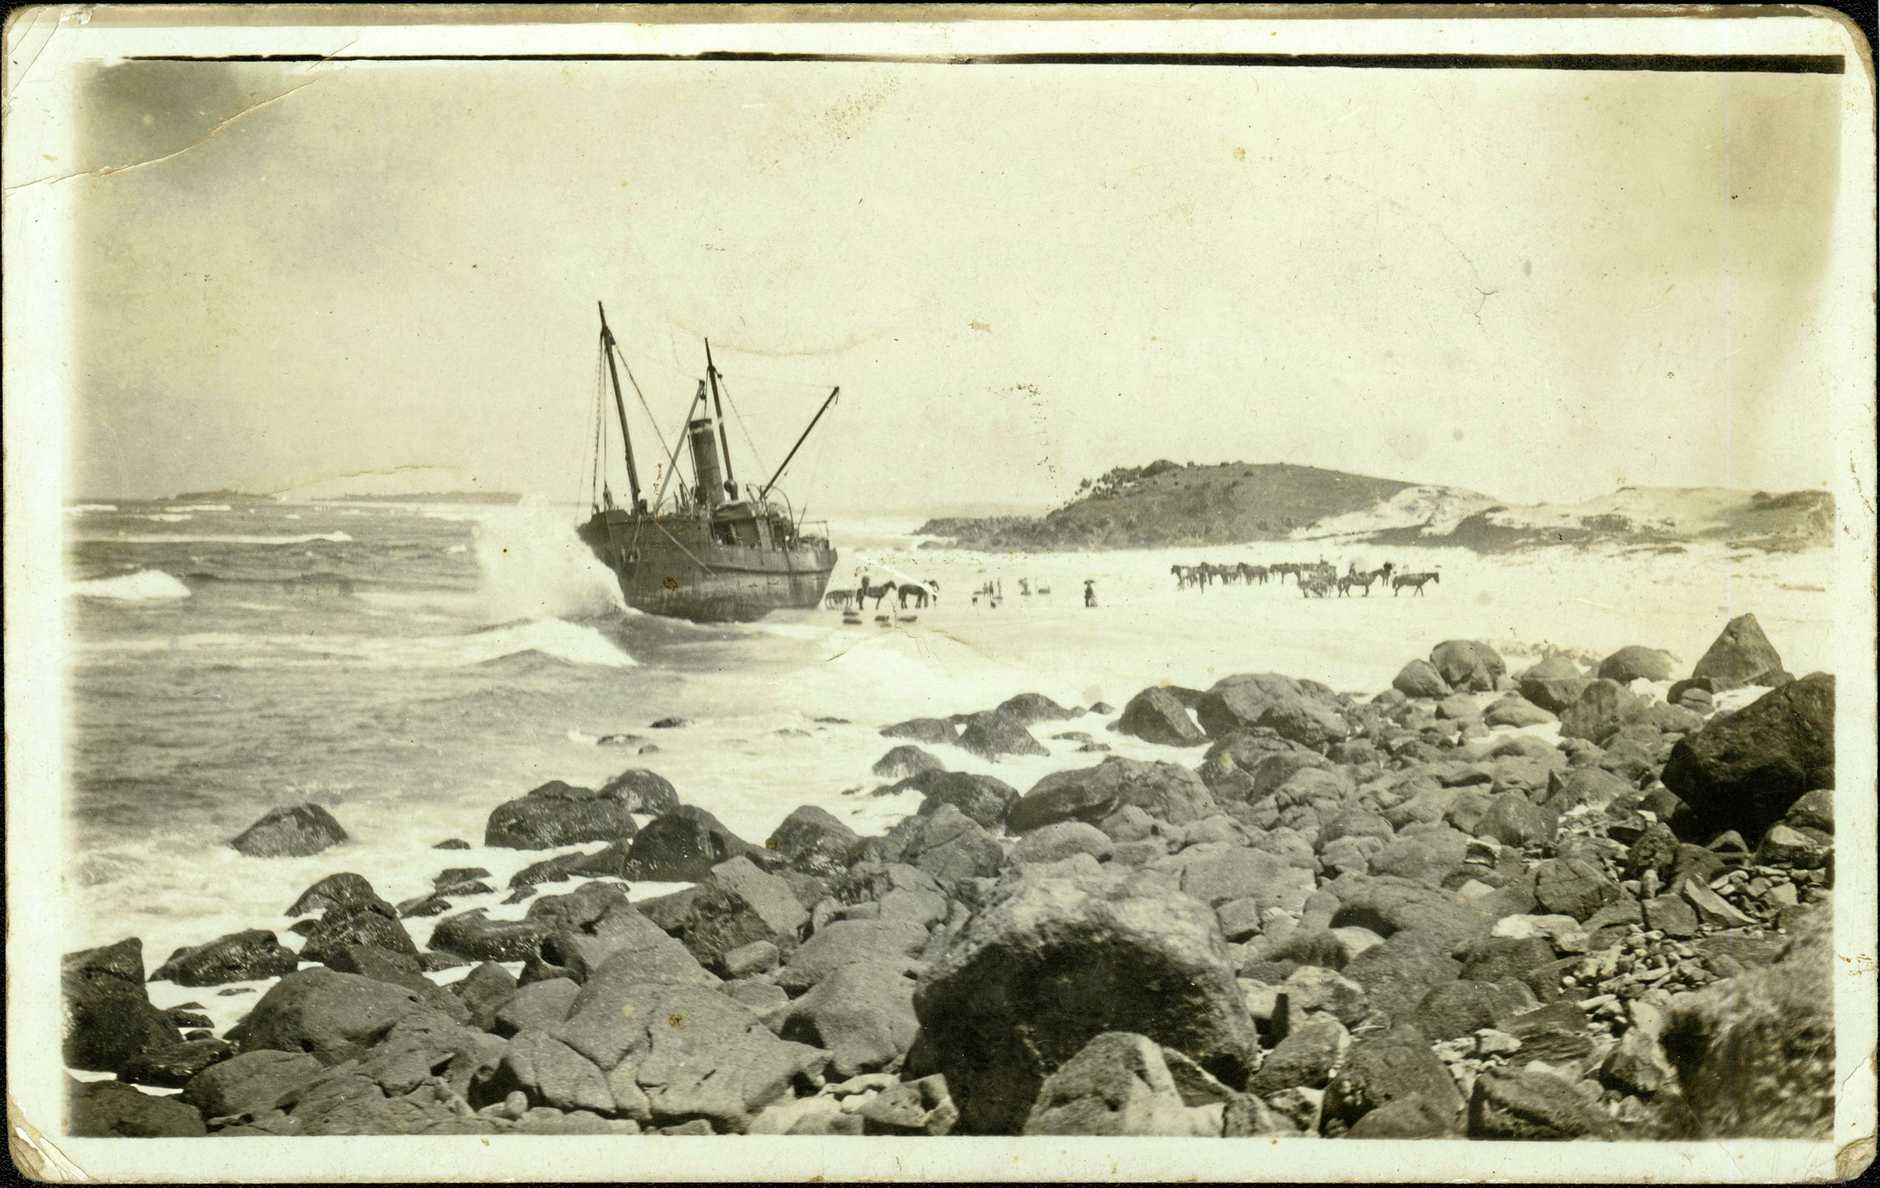 People and horses on the beach assisting with the salvaging of the Duranbah, November 1919.